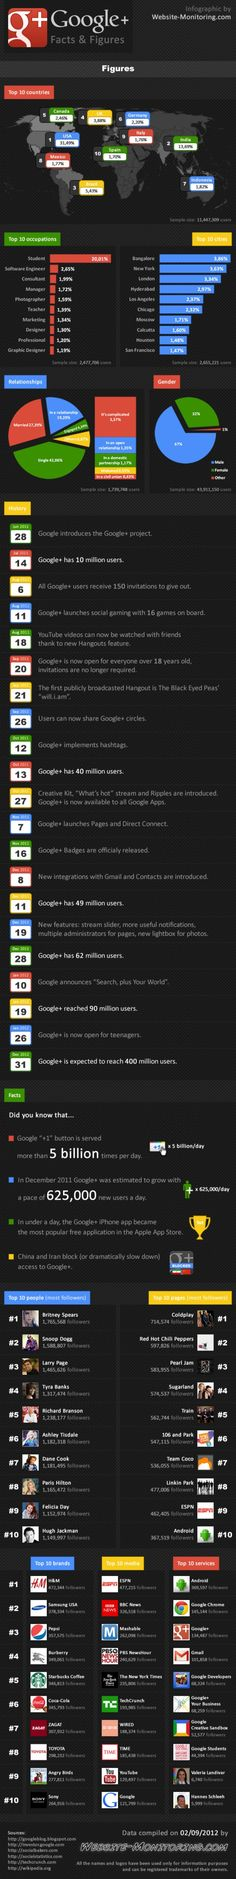 Google+ Most Popular With Male Users, Students